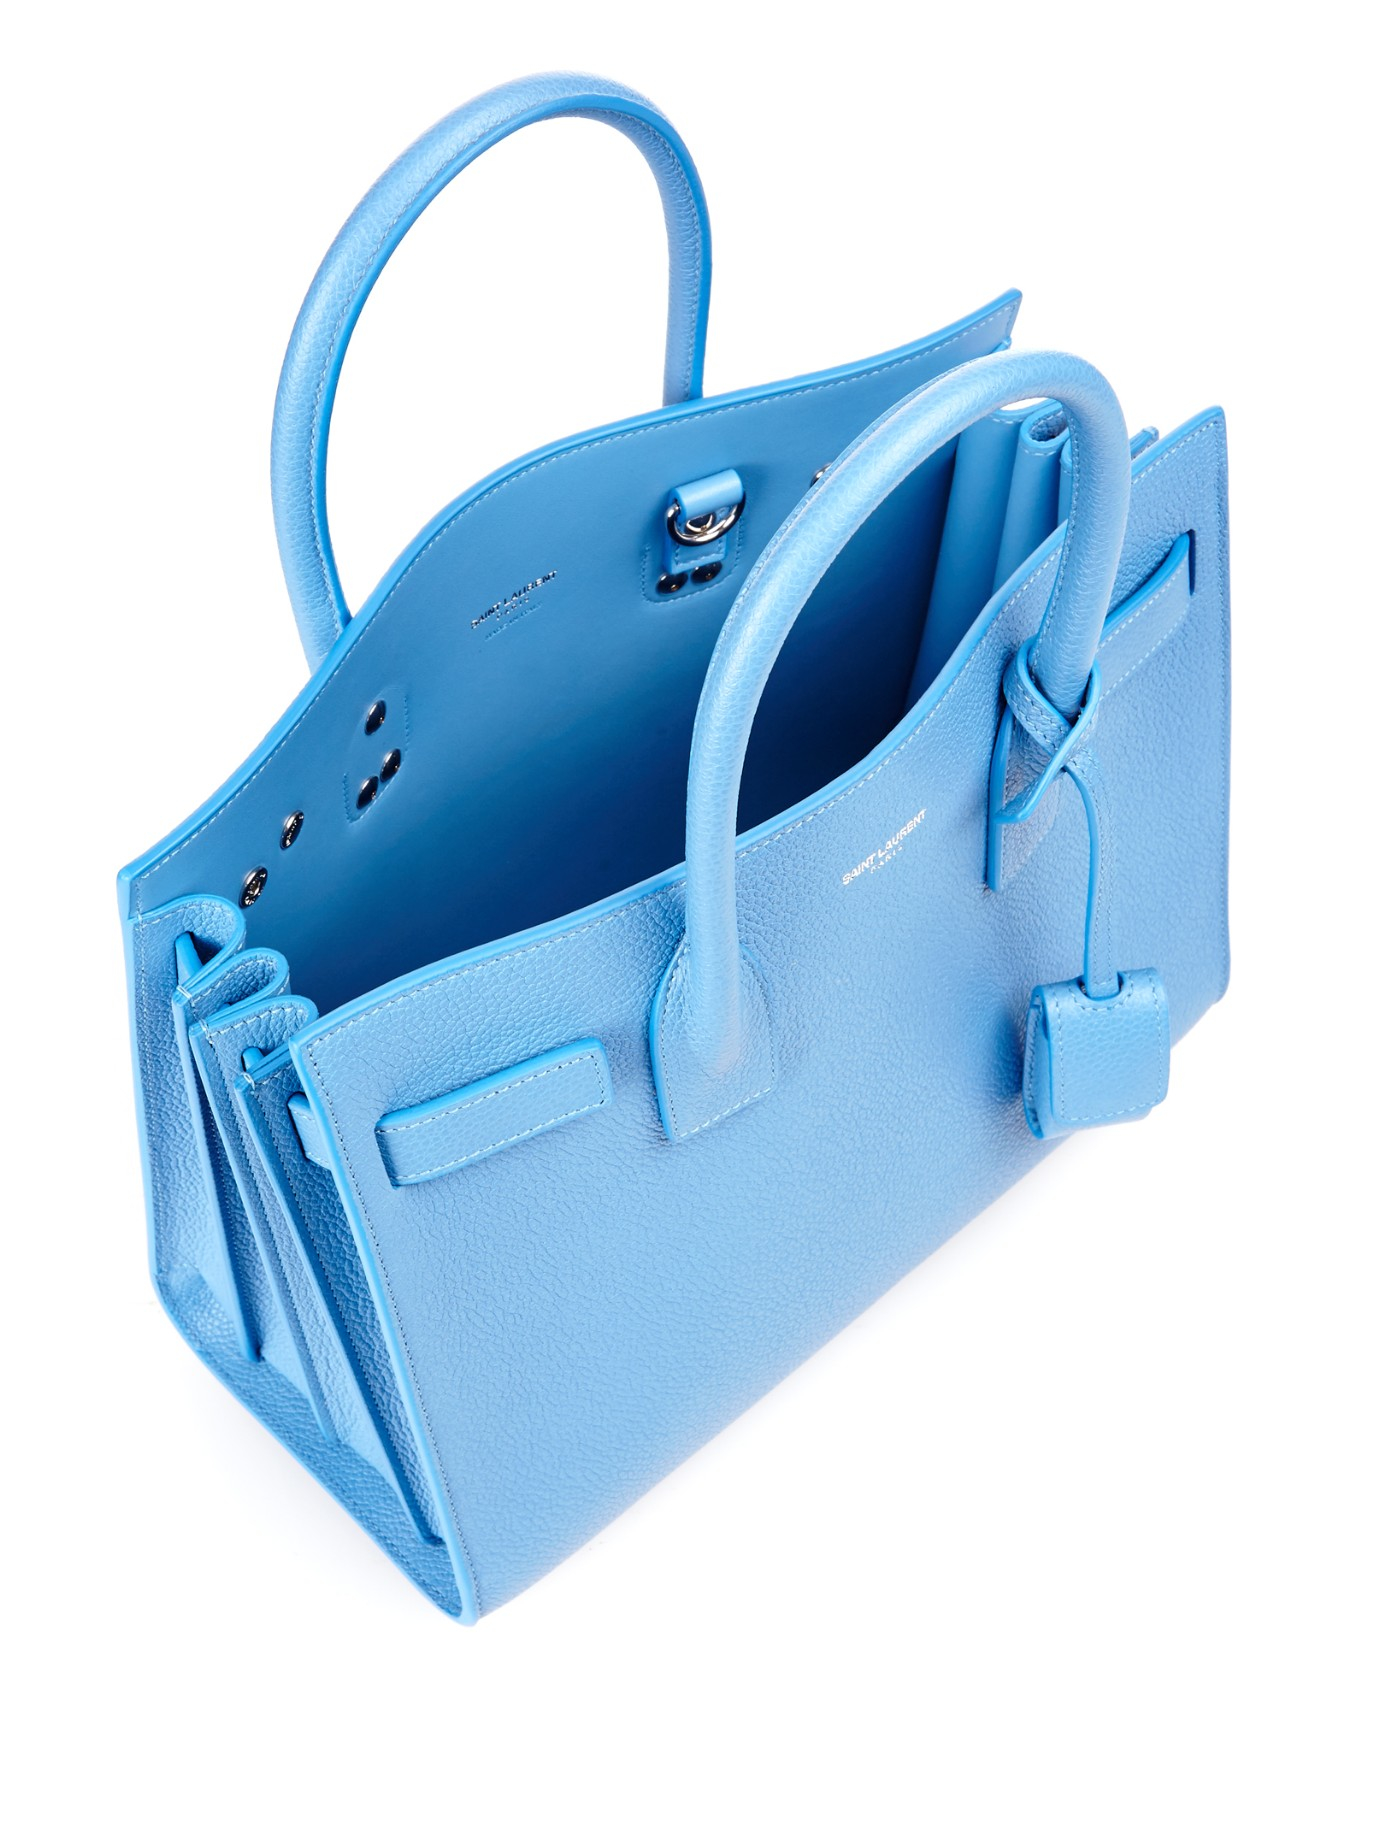 yves saint laurent bags prices - Saint laurent Sac De Jour Baby Leather Tote in Blue (LIGHT BLUE ...